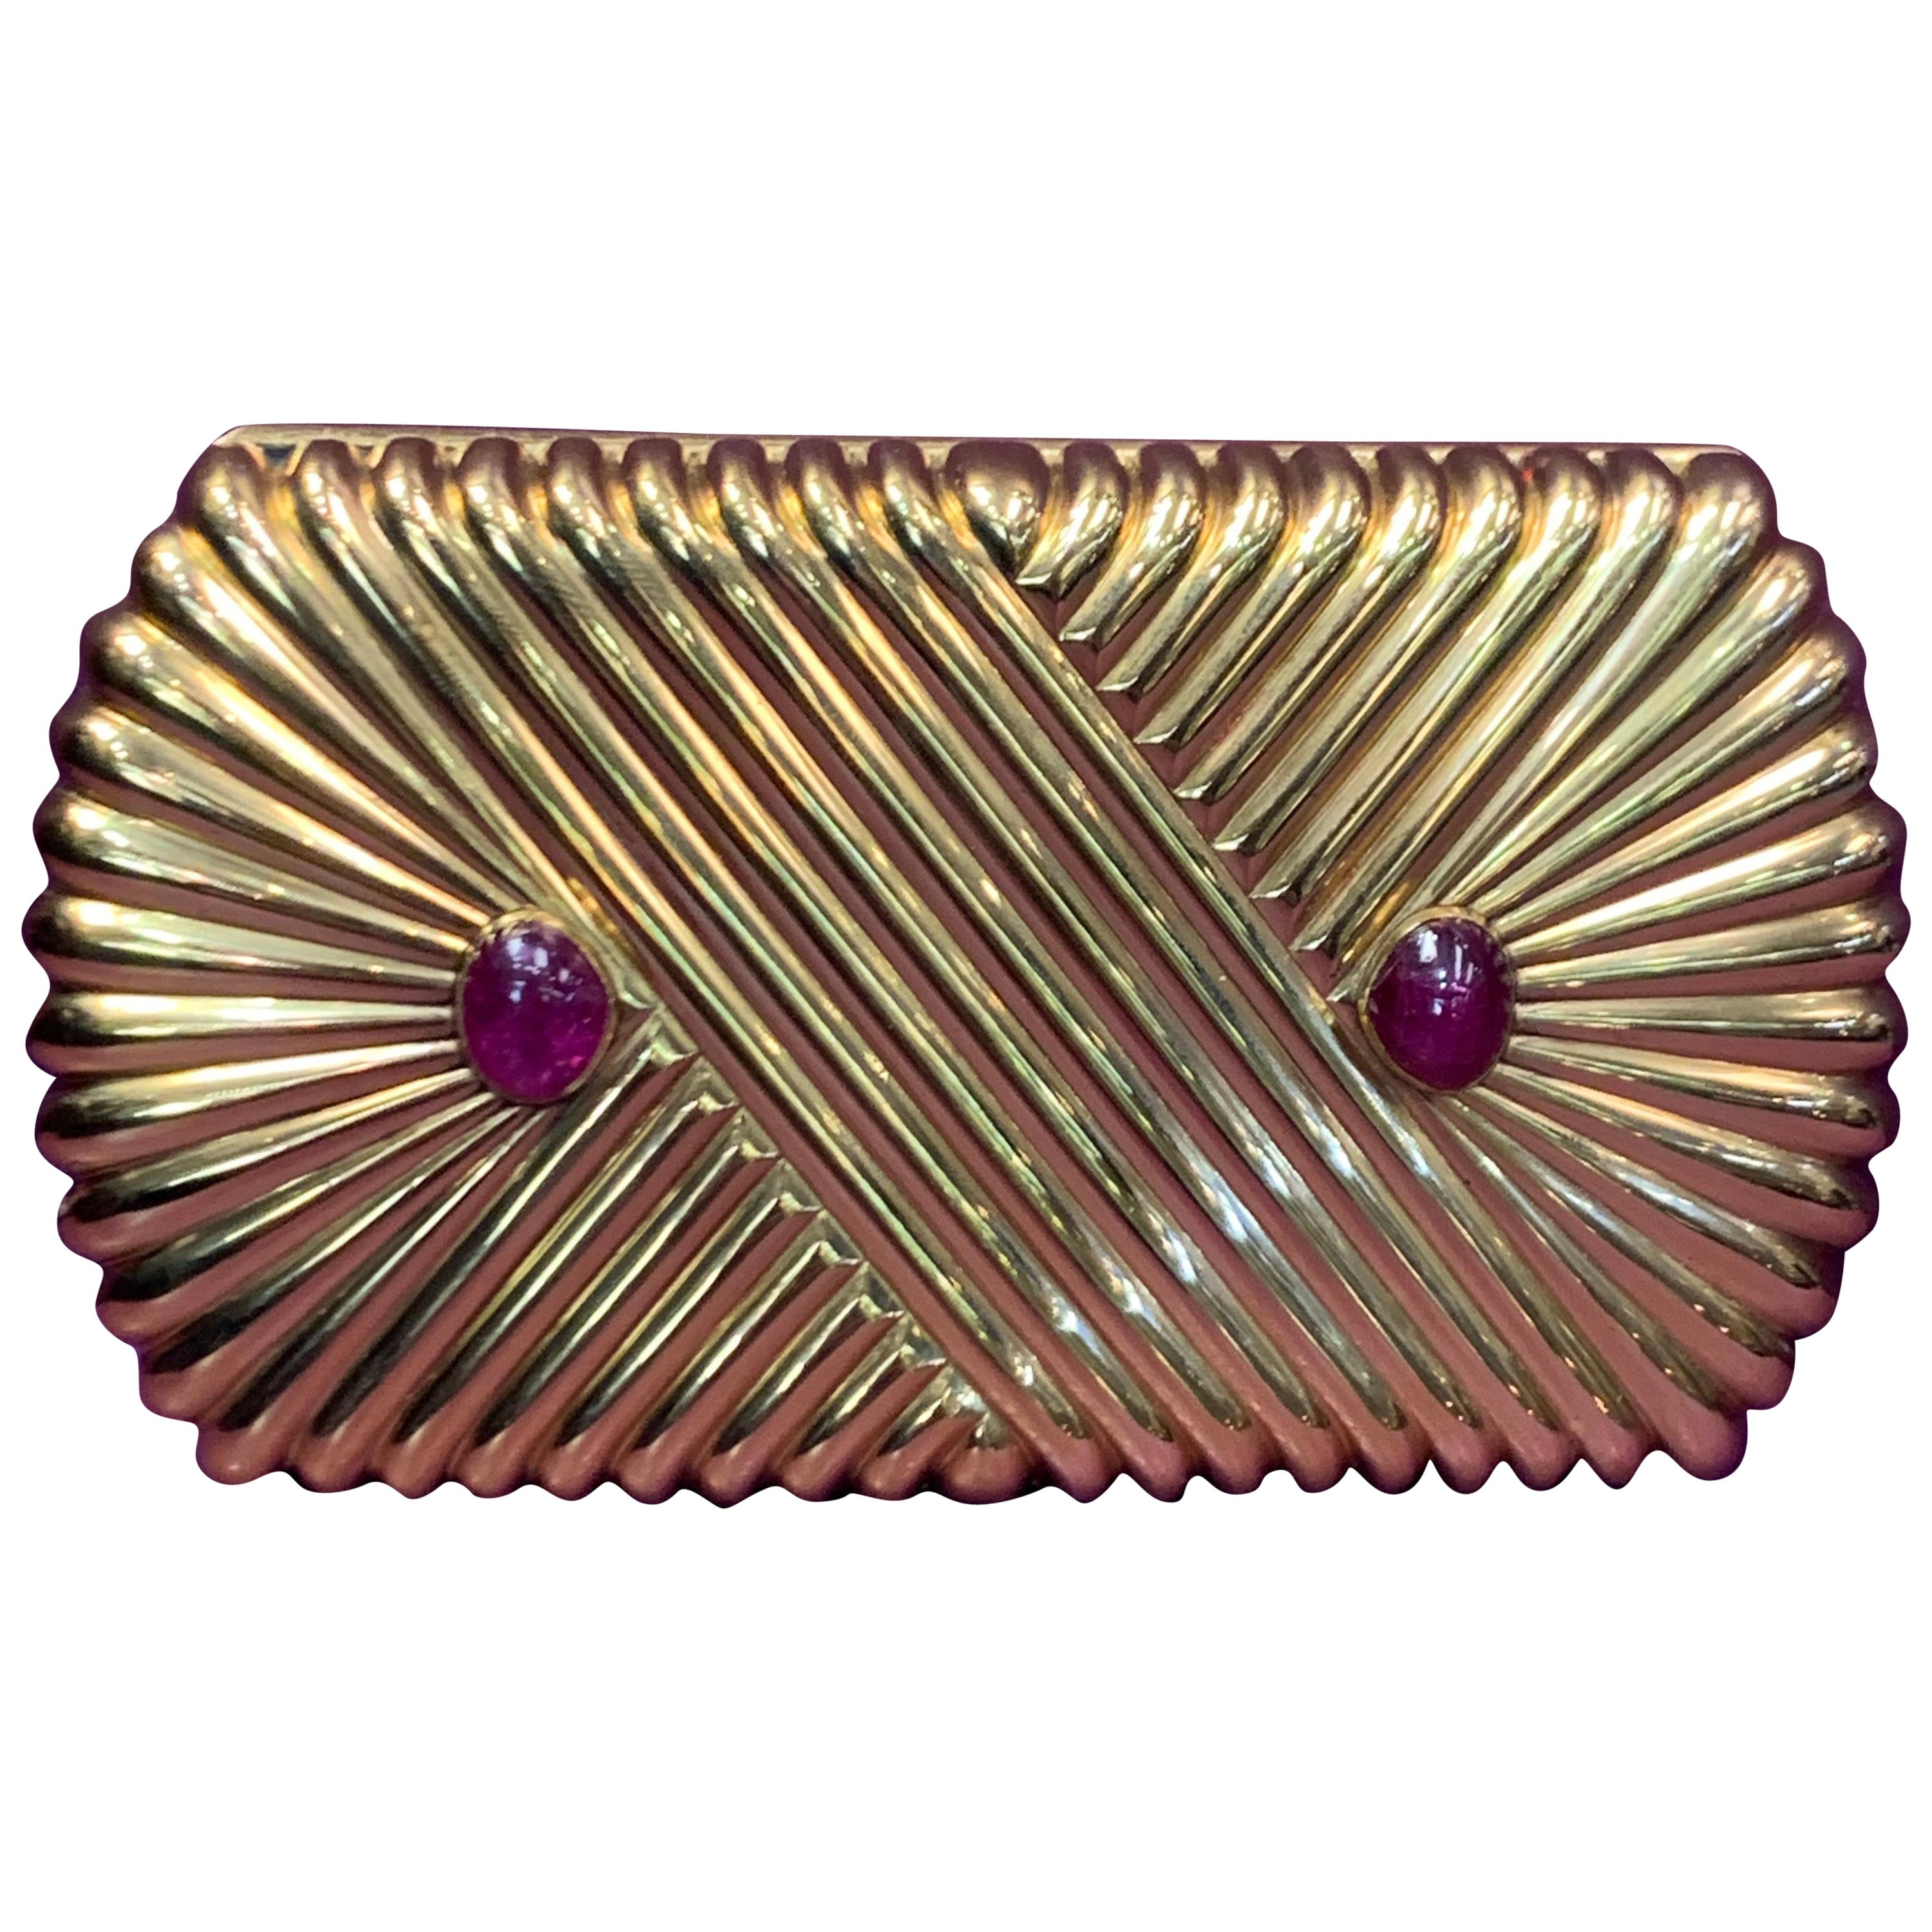 Van Cleef & Arpels Cabochon Ruby and Gold Minaudiere